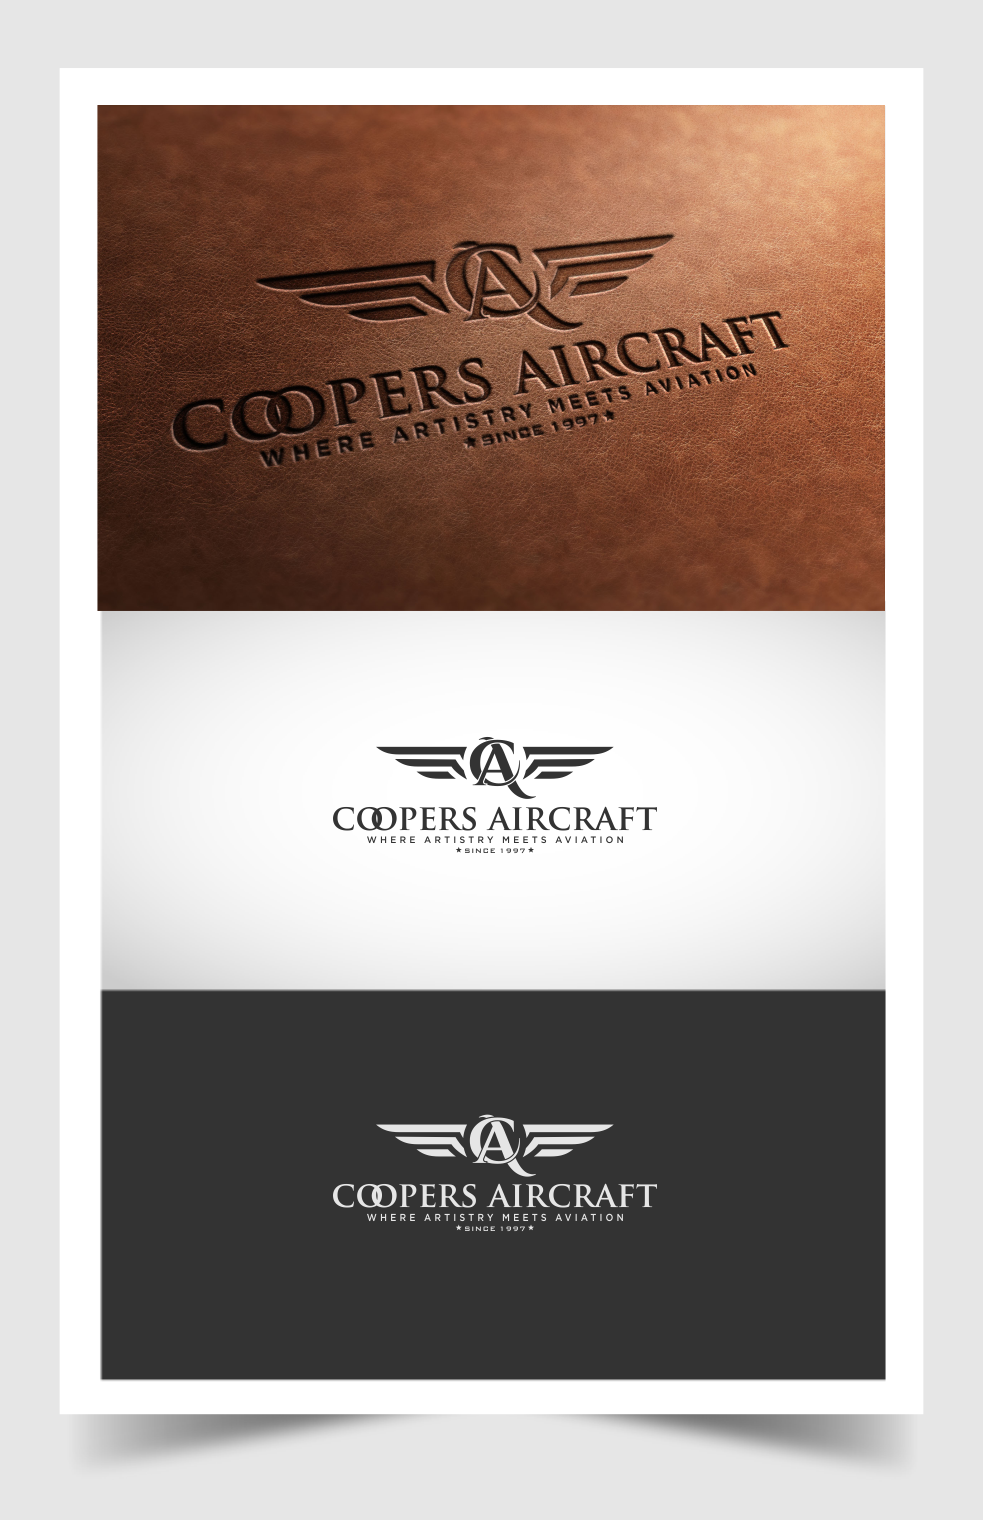 Coopers AirCraft